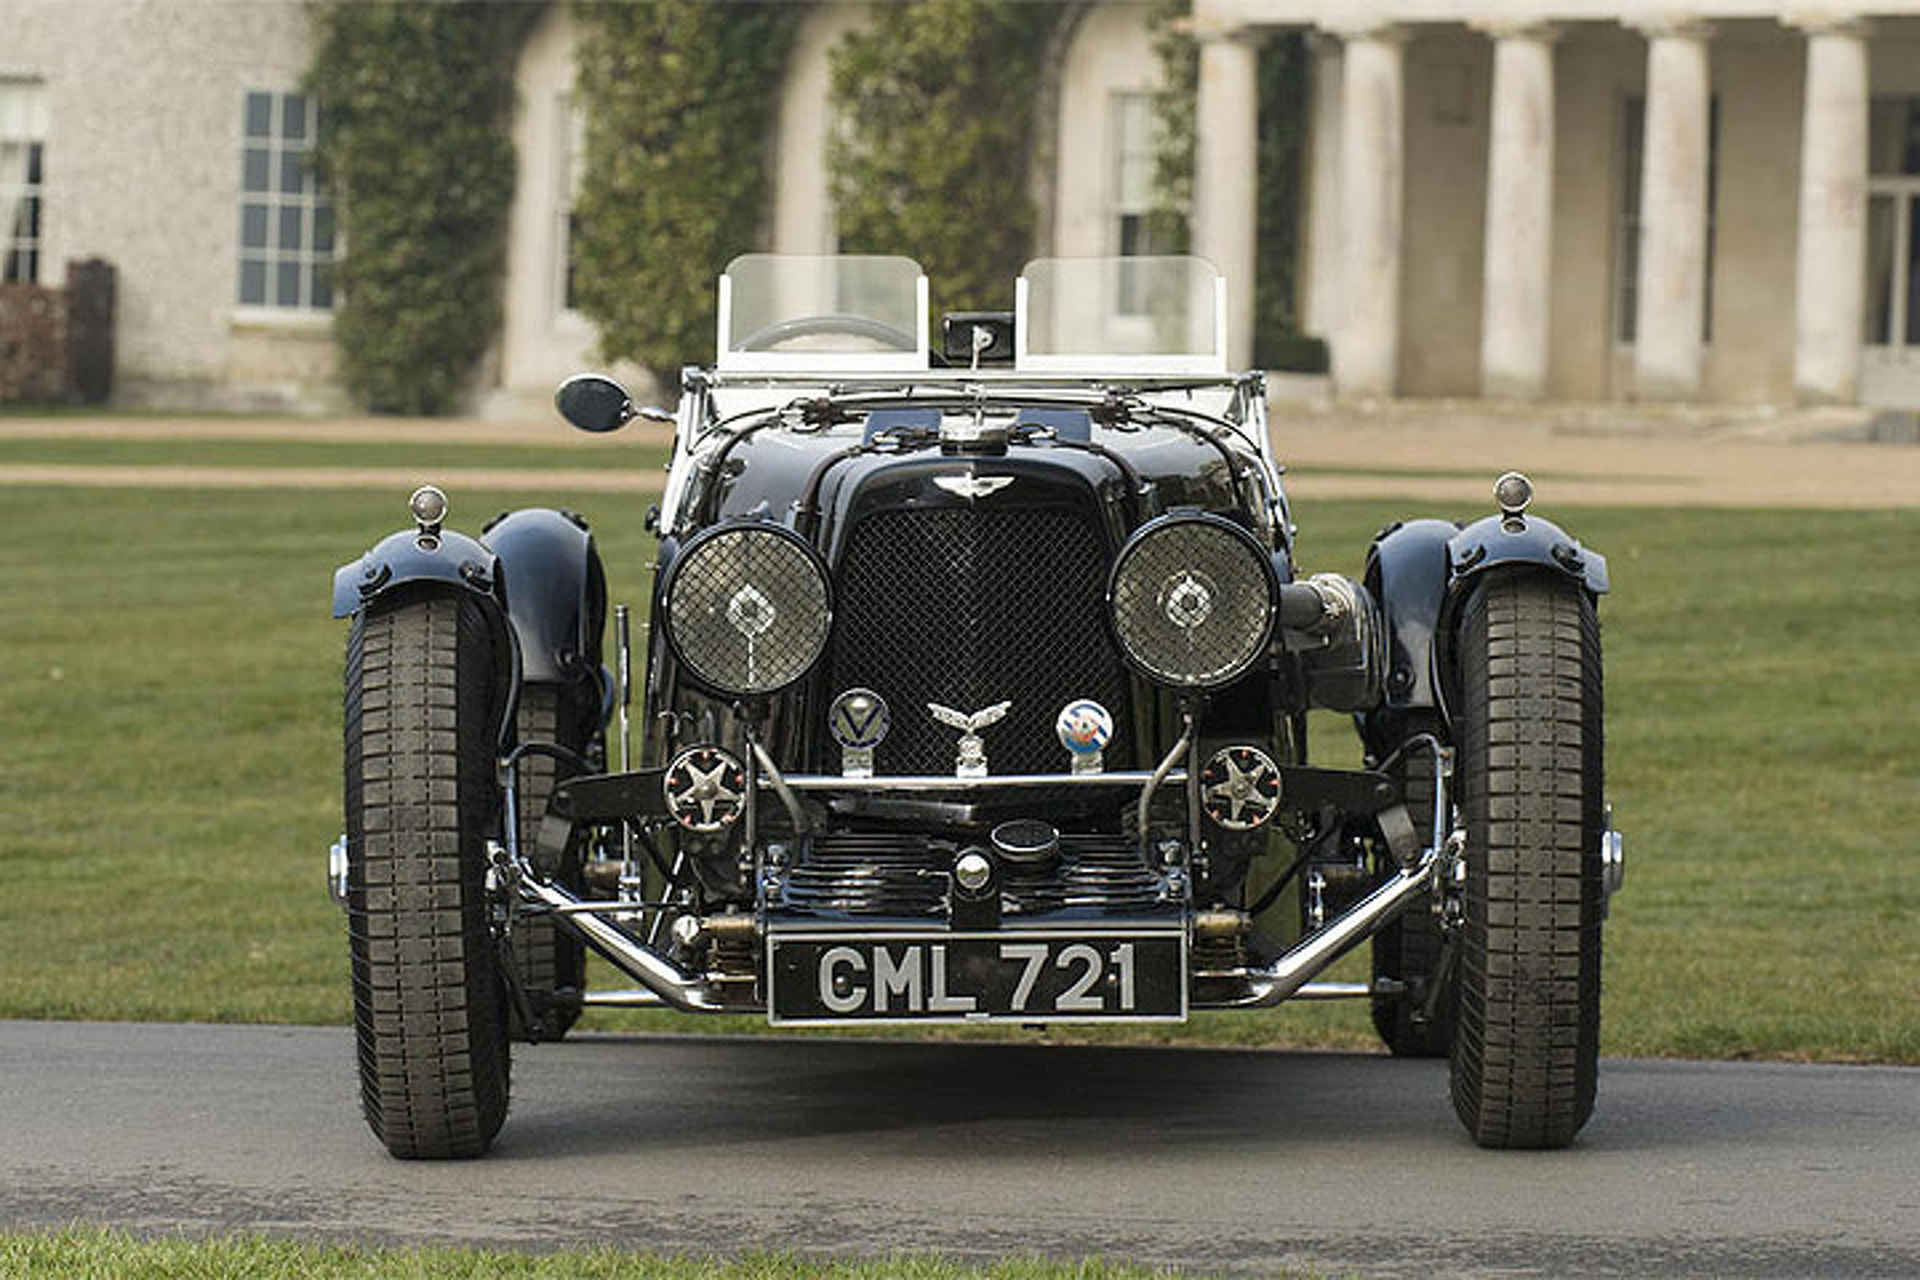 Rare 1935 Aston Martin Sells for $4.5 Million